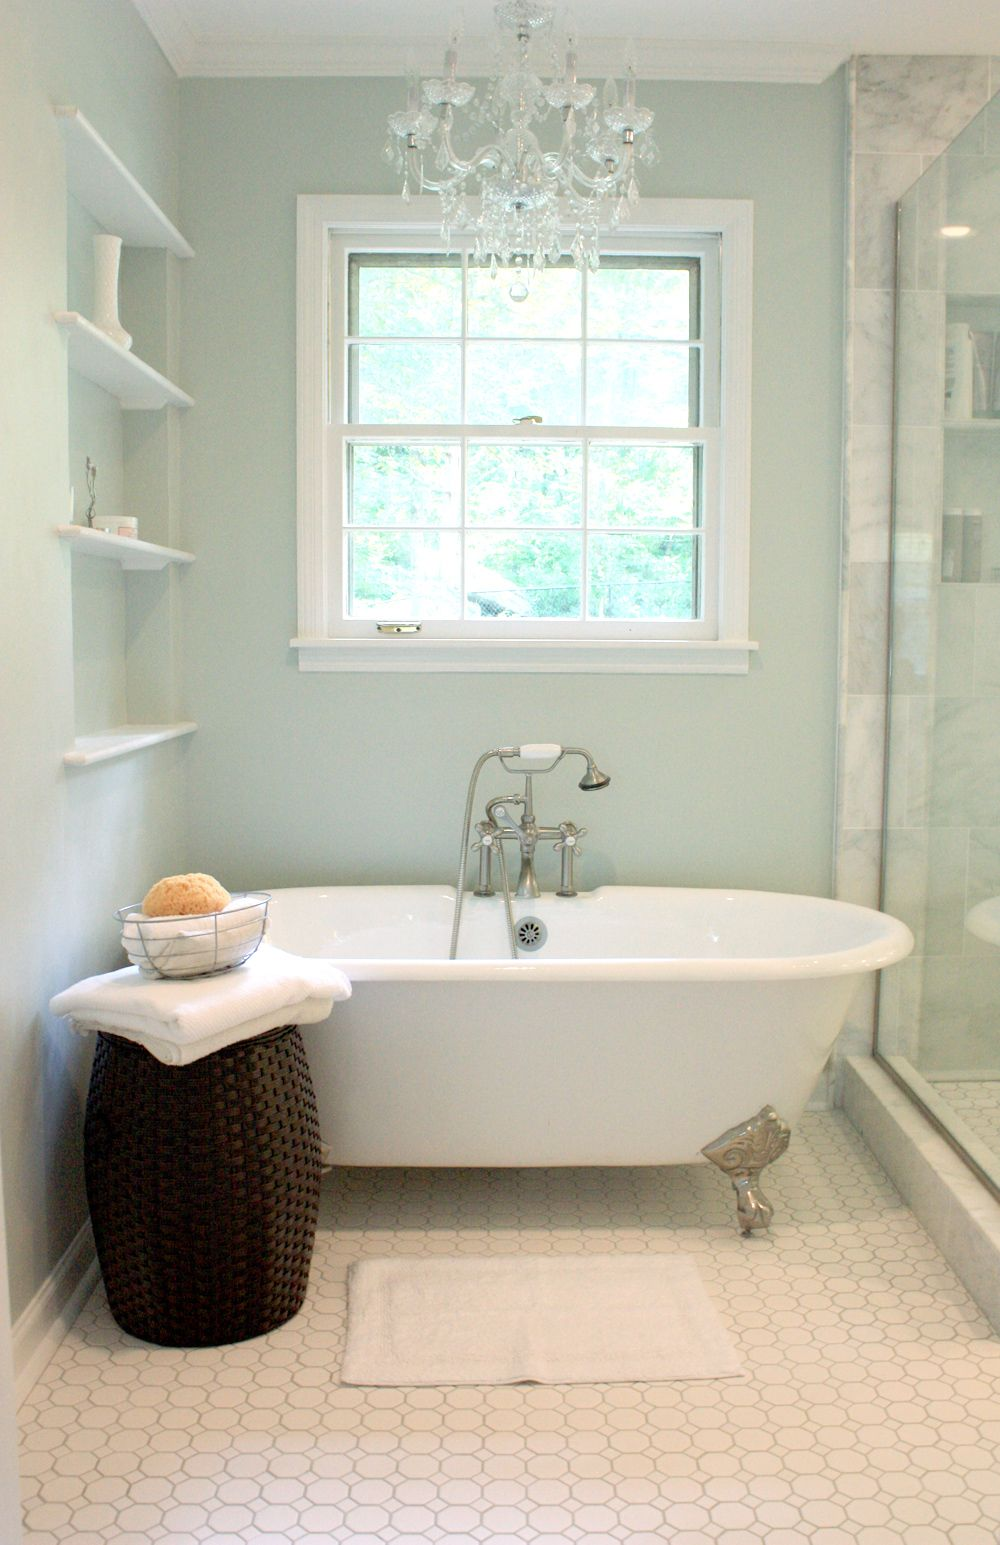 Sea Salt By Sherwin Williams This Is The Color Im Using For My - What color should i paint my bathroom